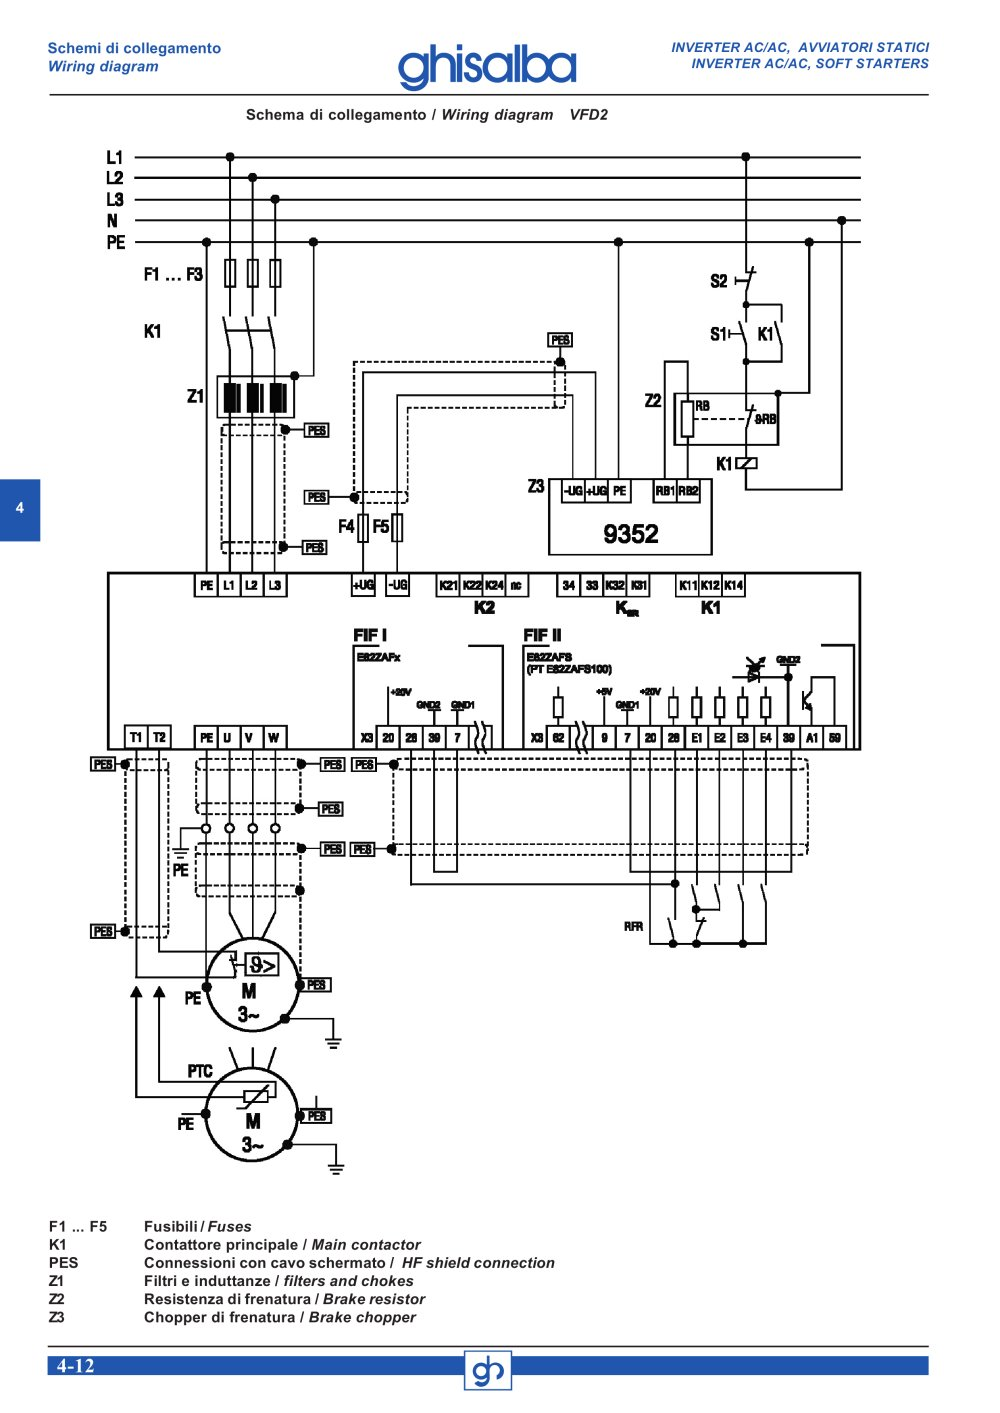 inverter soft starters 135447_10b?resized665%2C940 abb soft starter circuit diagram efcaviation com soft starter wiring diagram schneider at virtualis.co